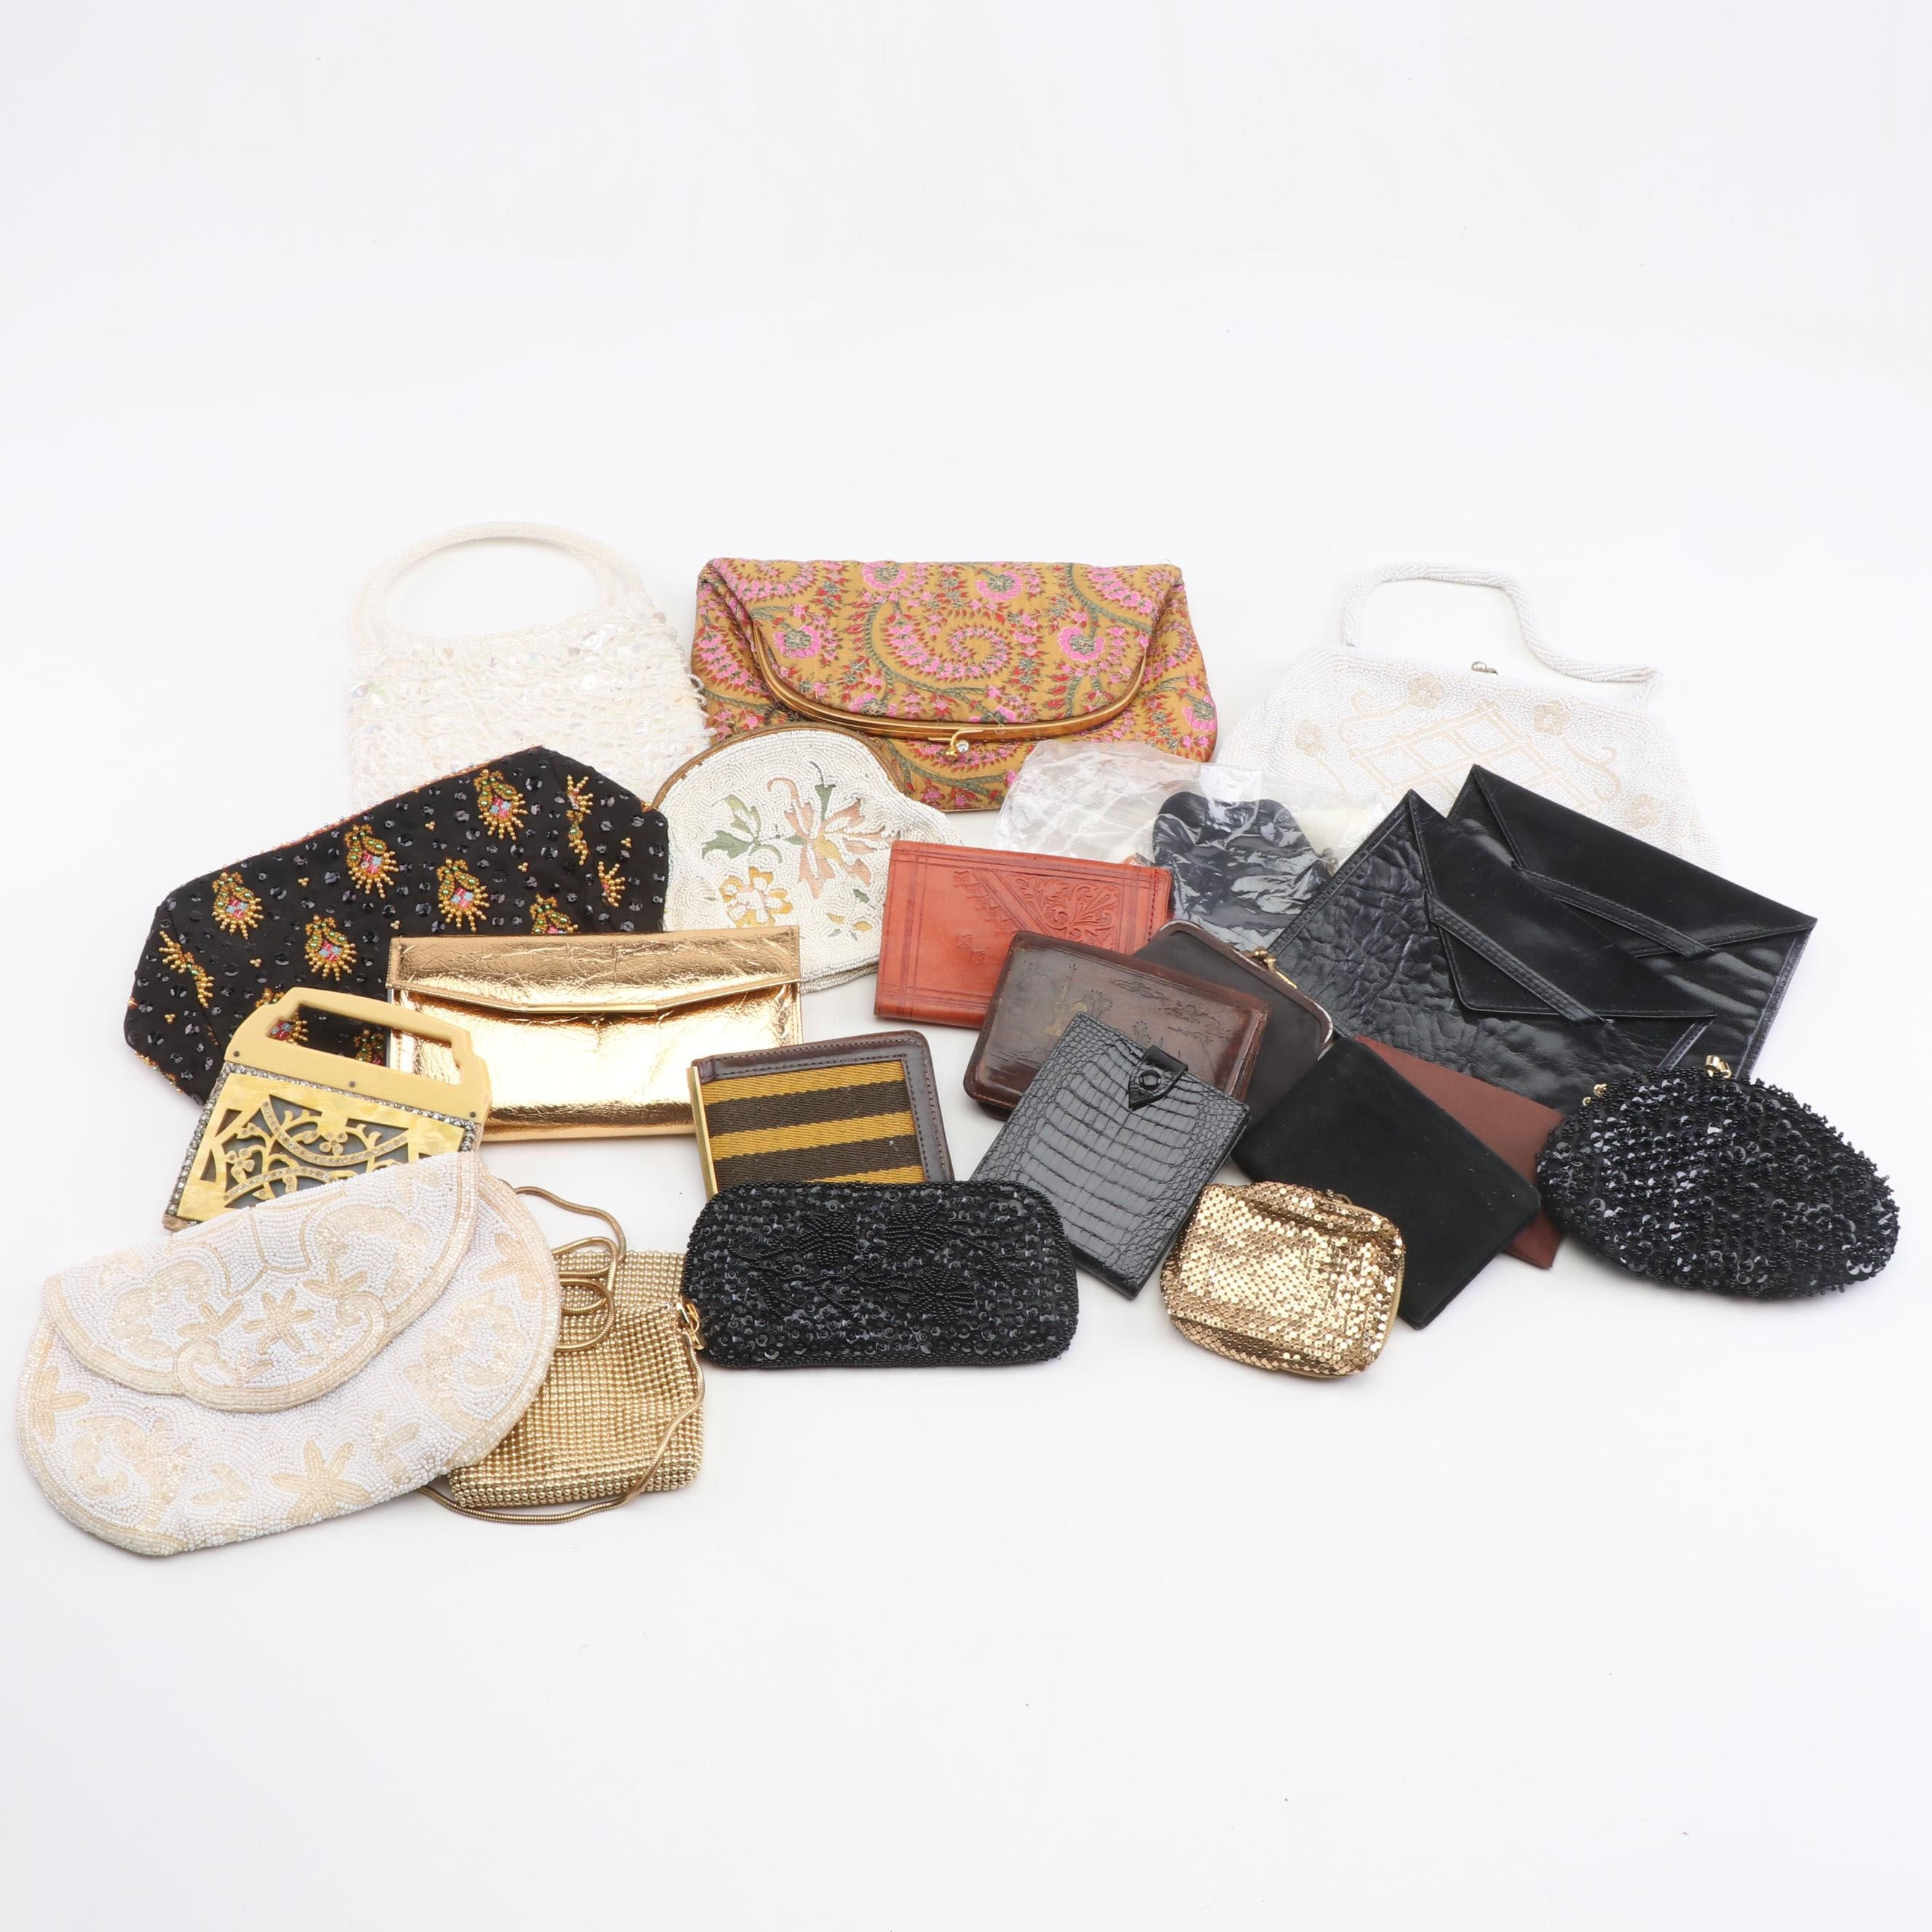 Beaded, Mesh, and Leather Evening Bags and Wallets Including Whiting & Davis